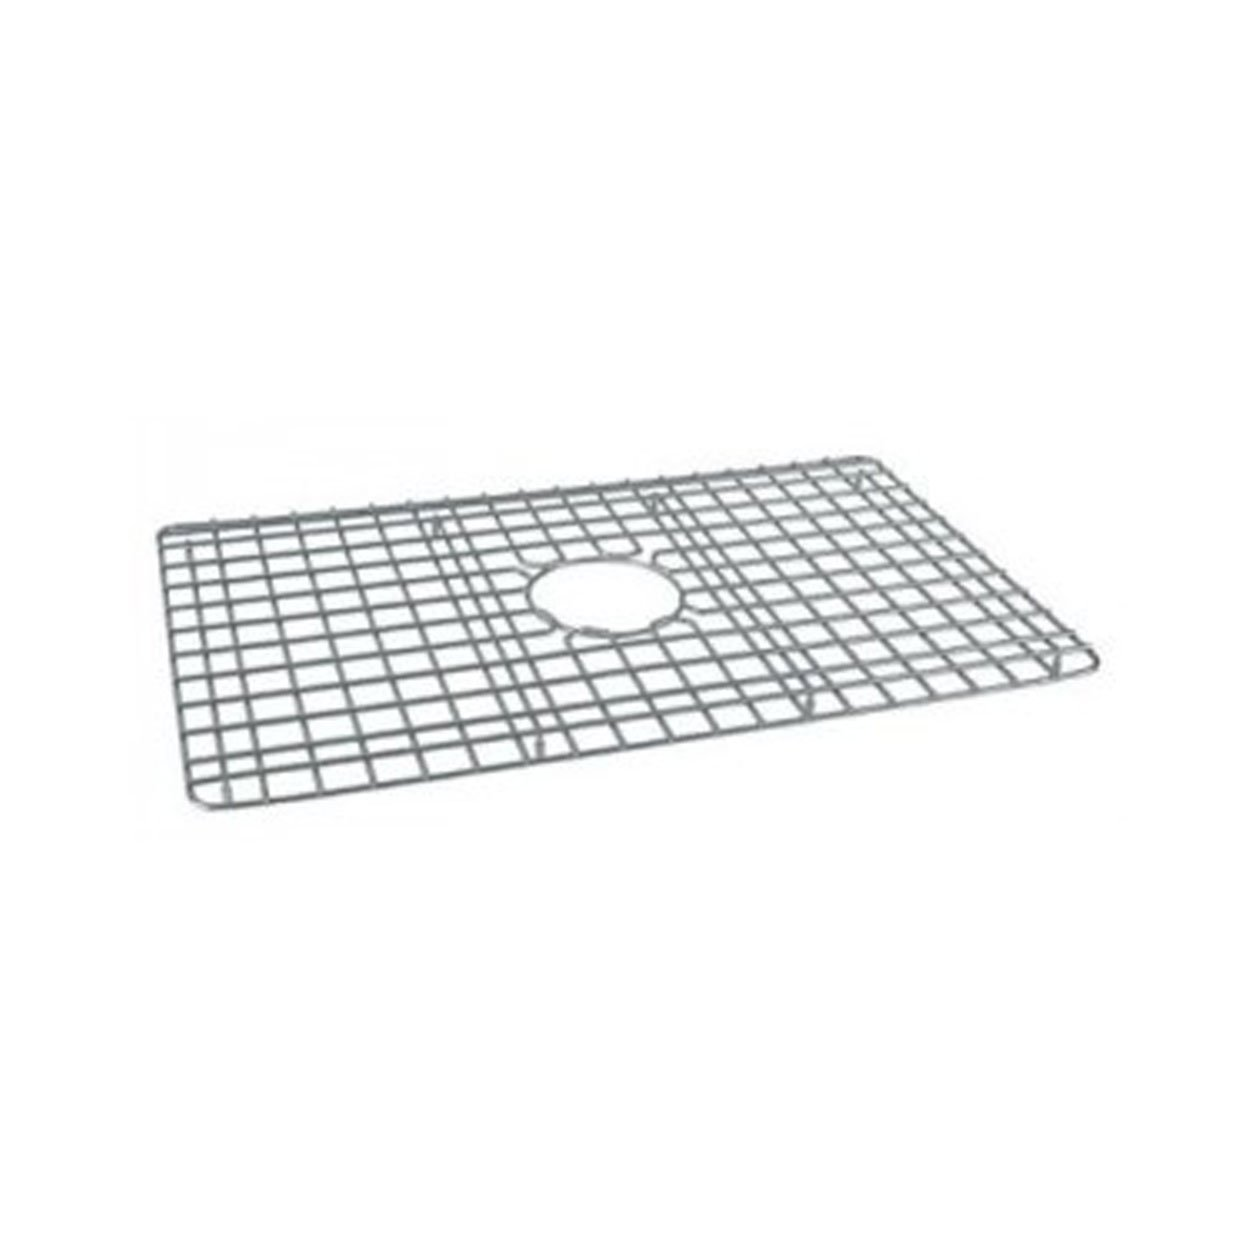 Franke PS12-36C Professional Series Bottom Sink Grid for PSX110138